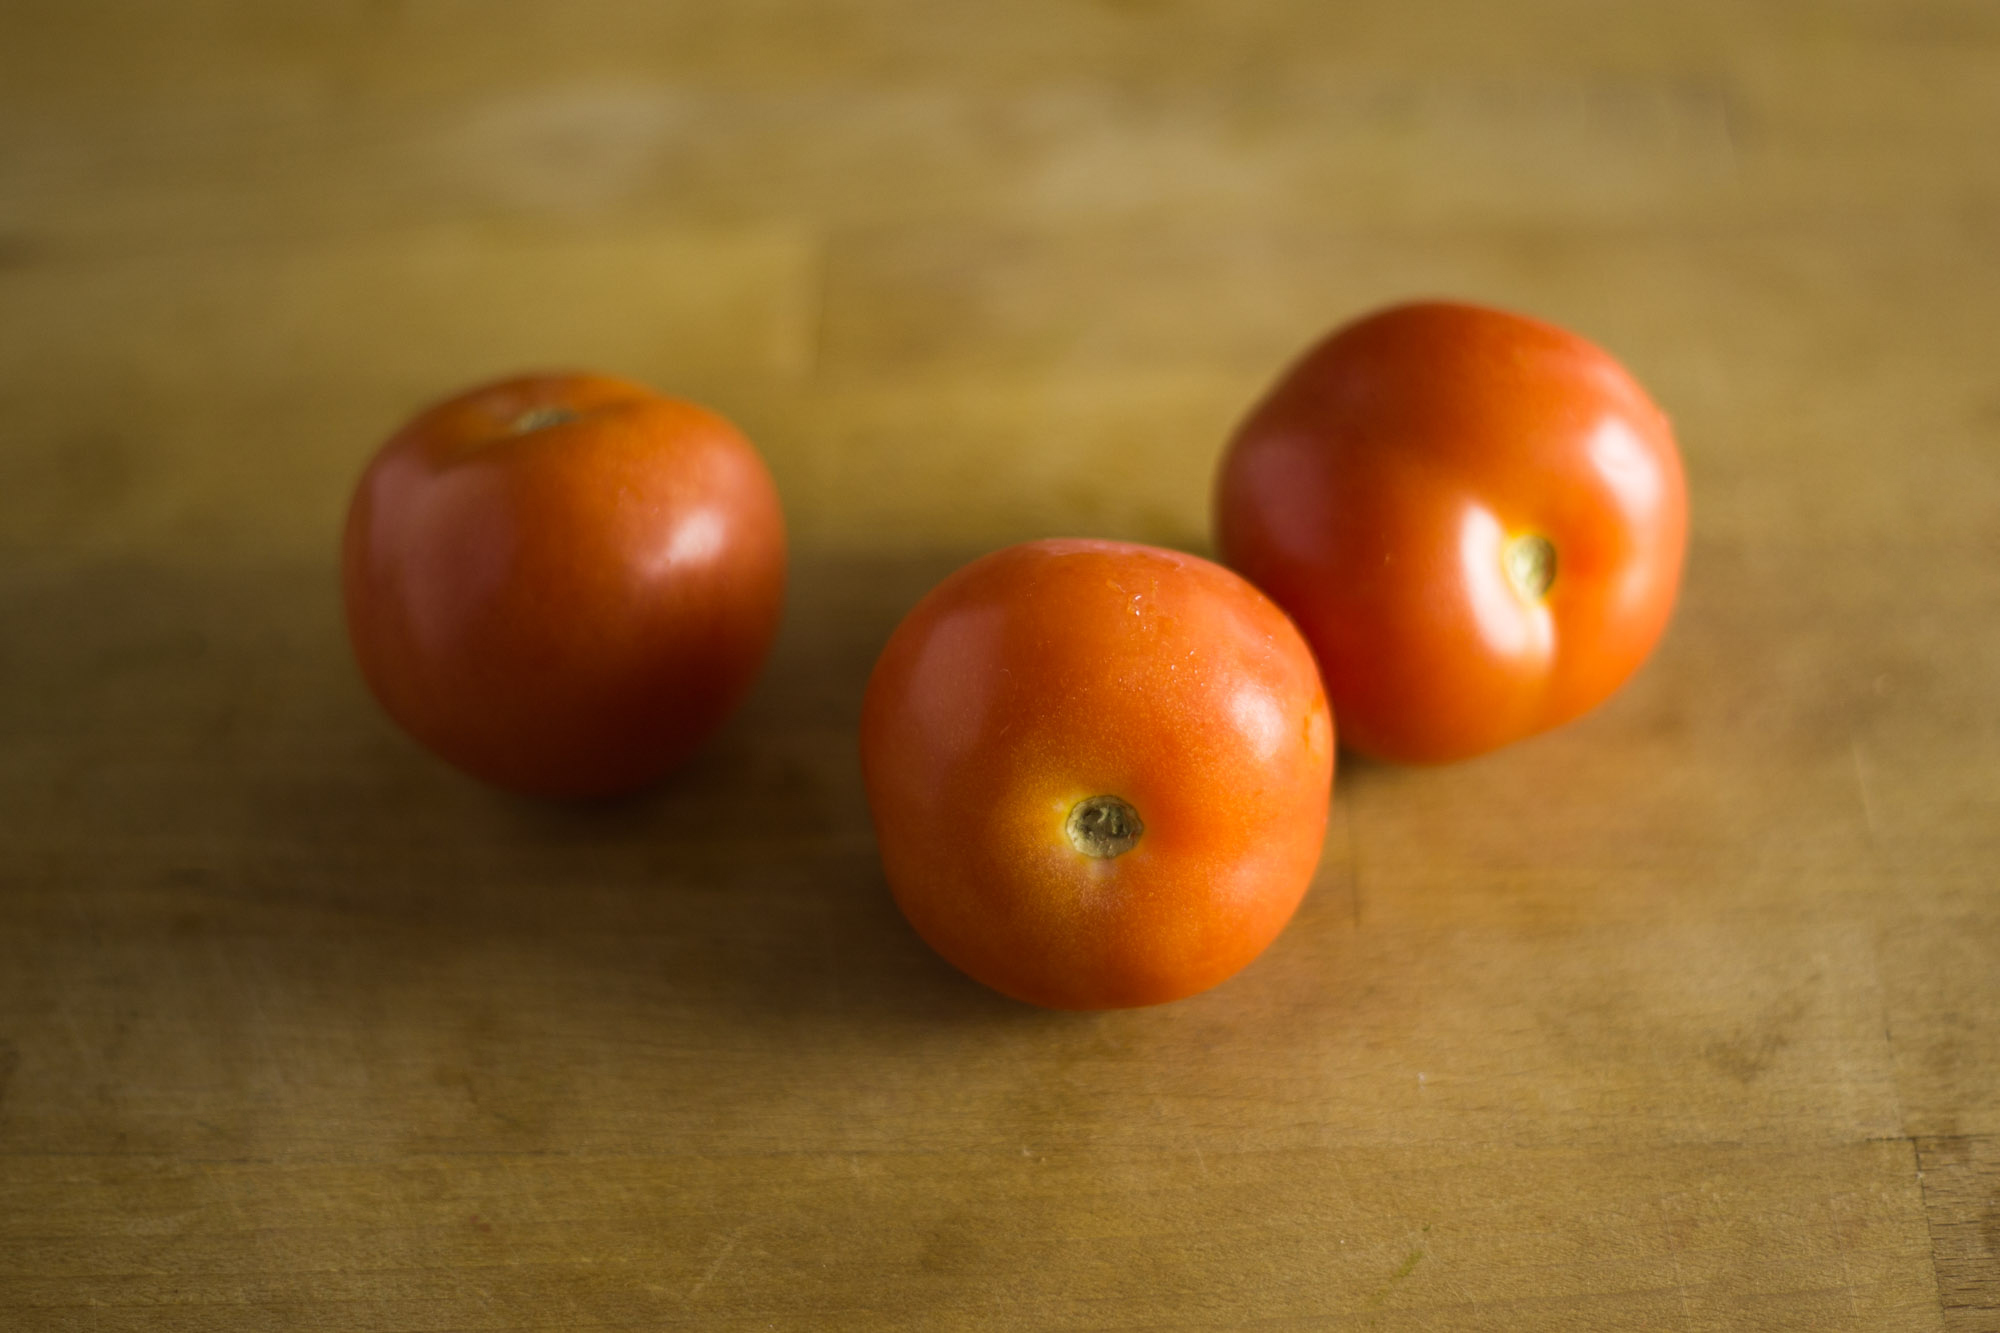 Tomatoes (Loose)